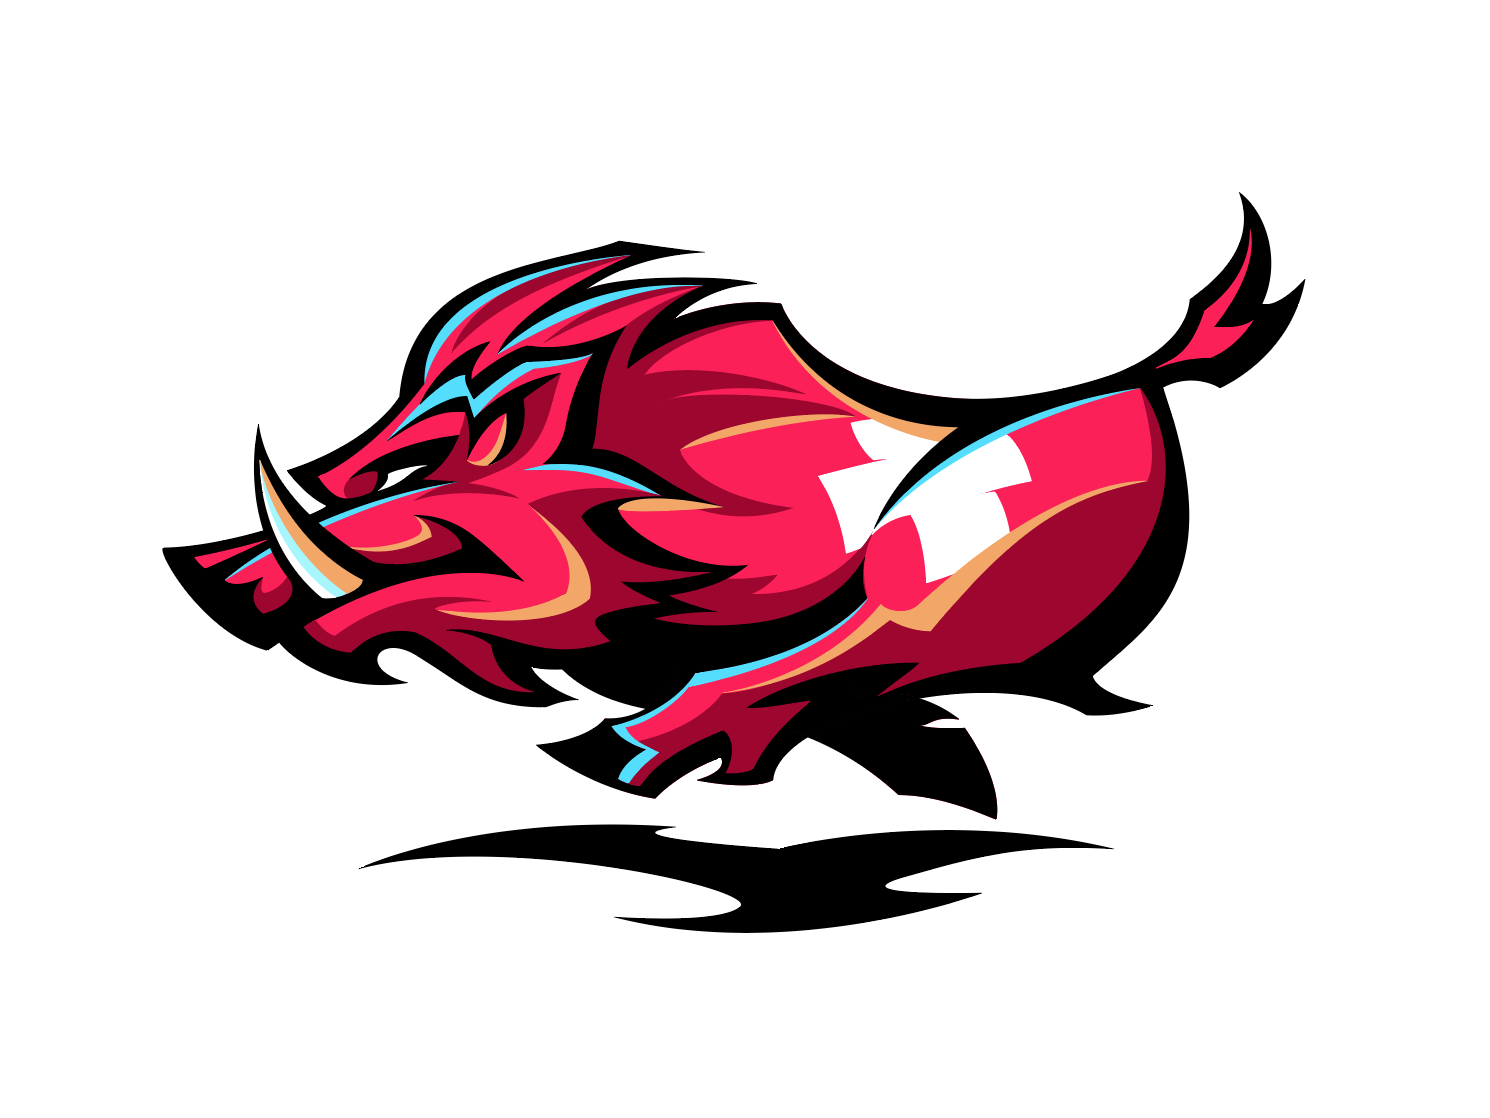 royalty free download Boar vector logo. By dionisis chalikias on